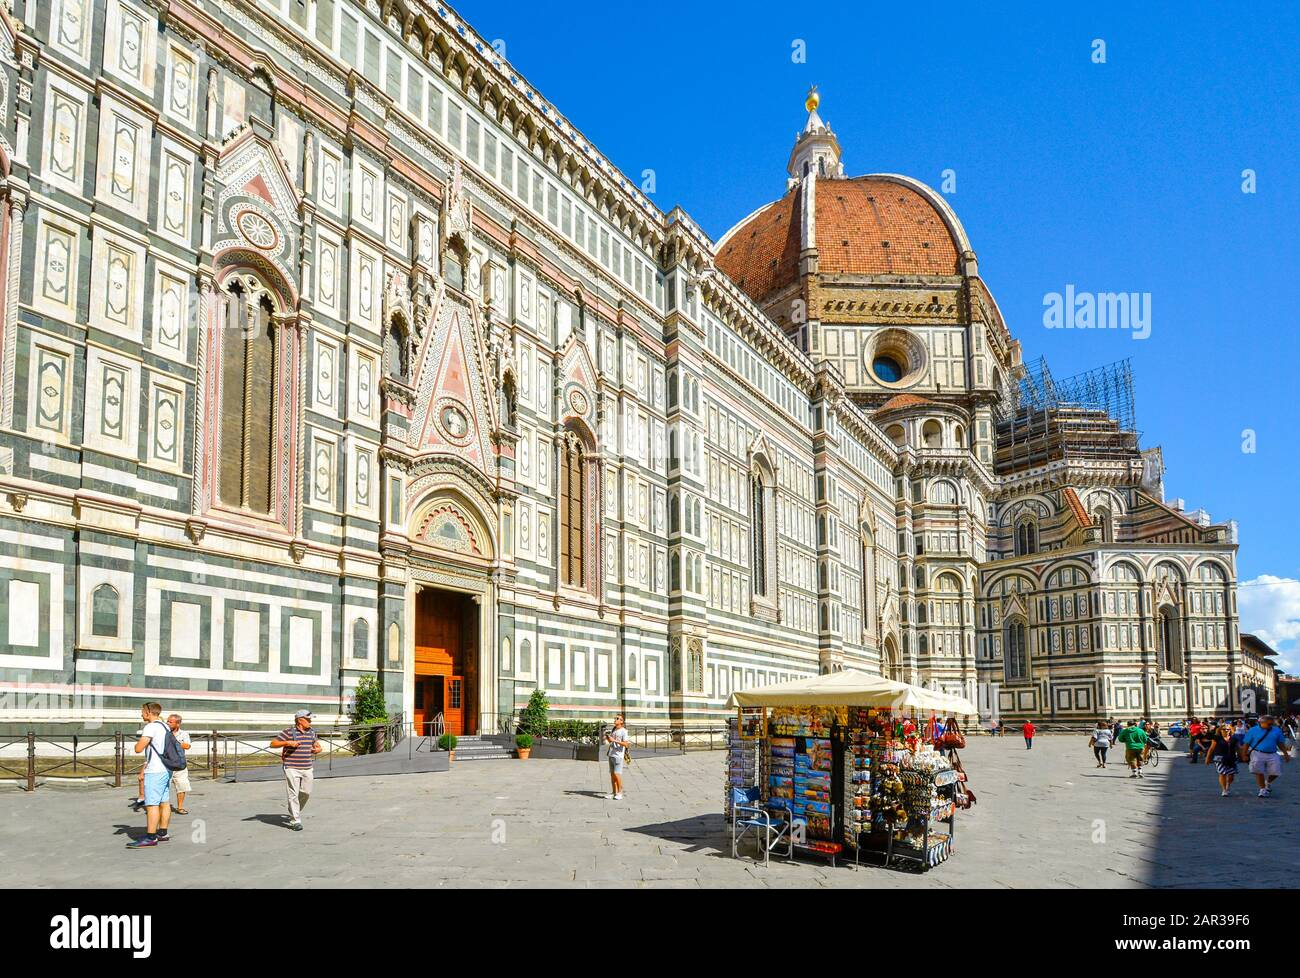 A souvenir booth outside the Florence Cathedral or Cattedrale di Santa Maria del Fiore in the Piazza del Duomo in the Tuscan region of Florence Italy Stock Photo